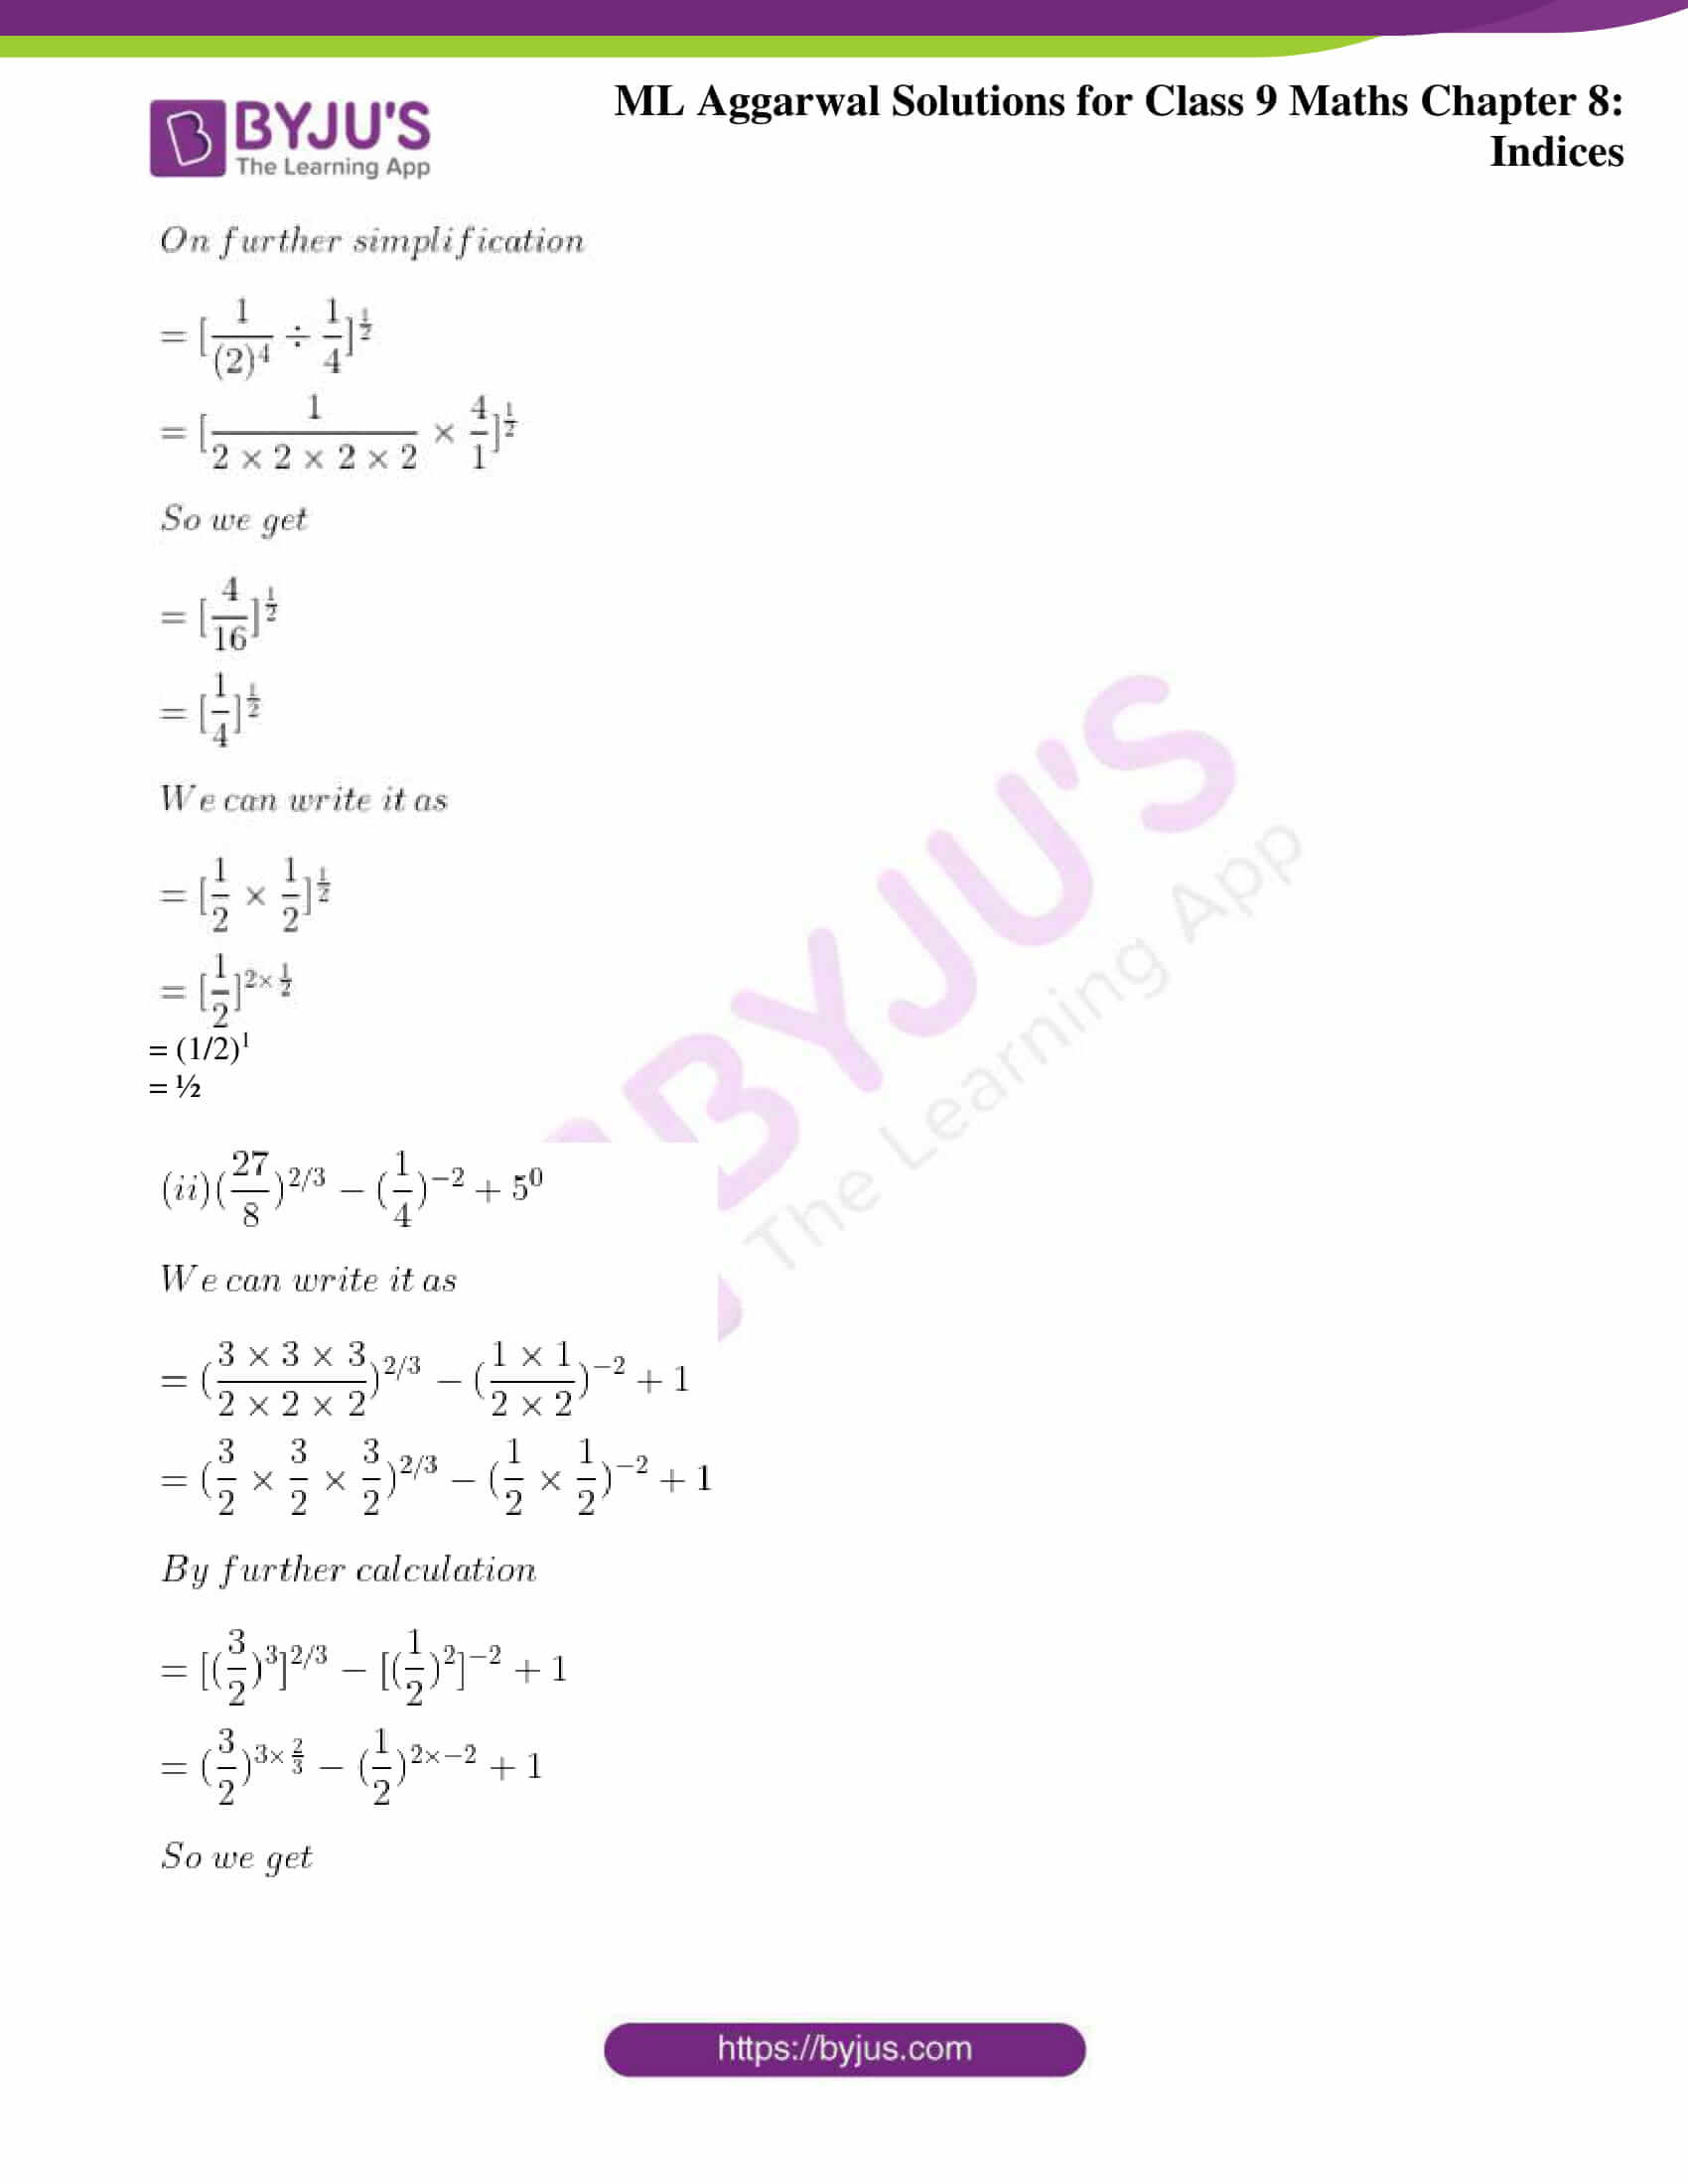 ml aggarwal solutions for class 9 maths chapter 8 06